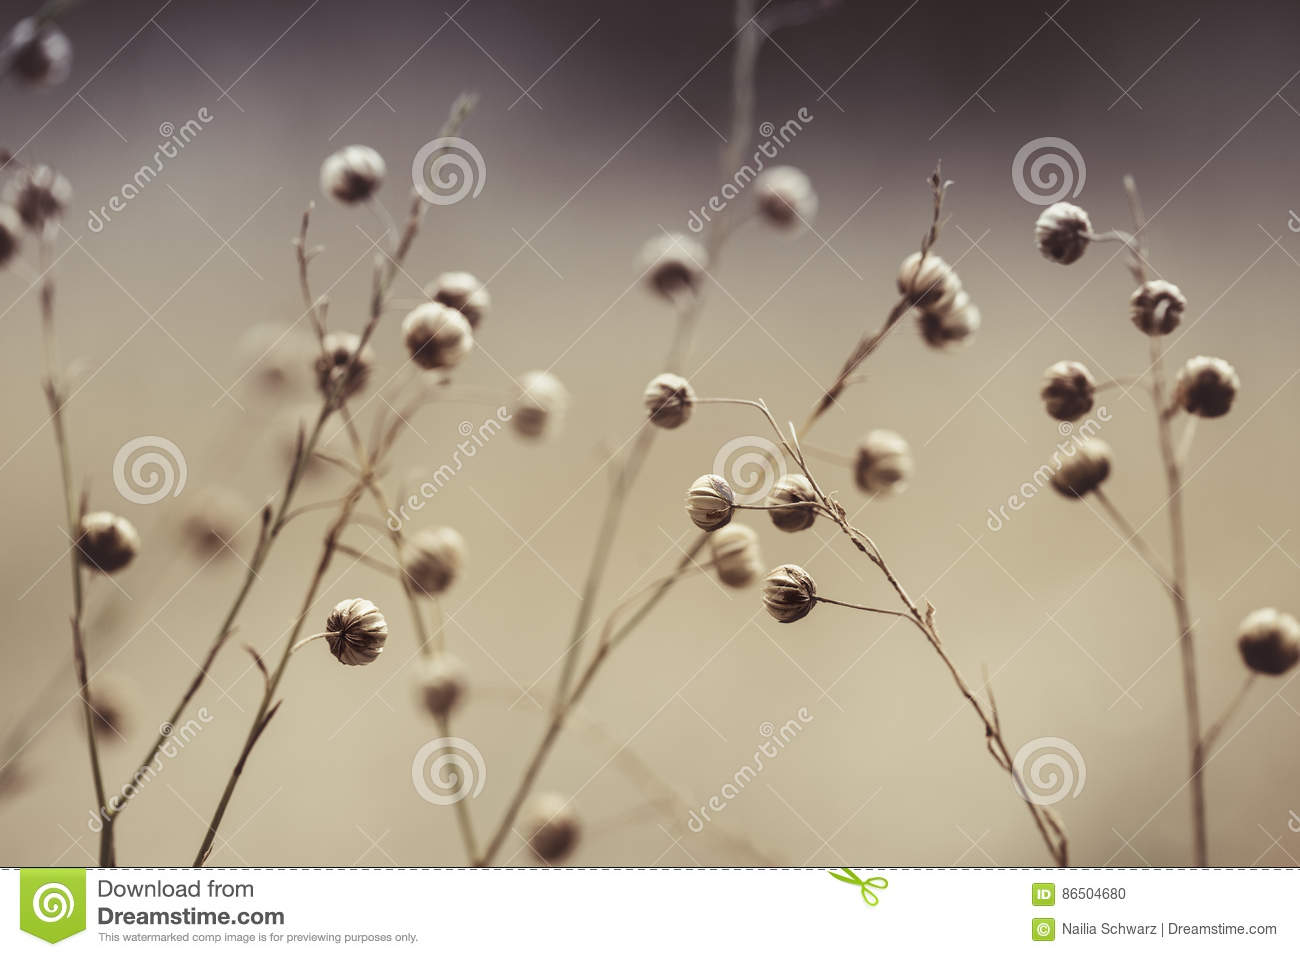 Flower Seed Pods in Summer